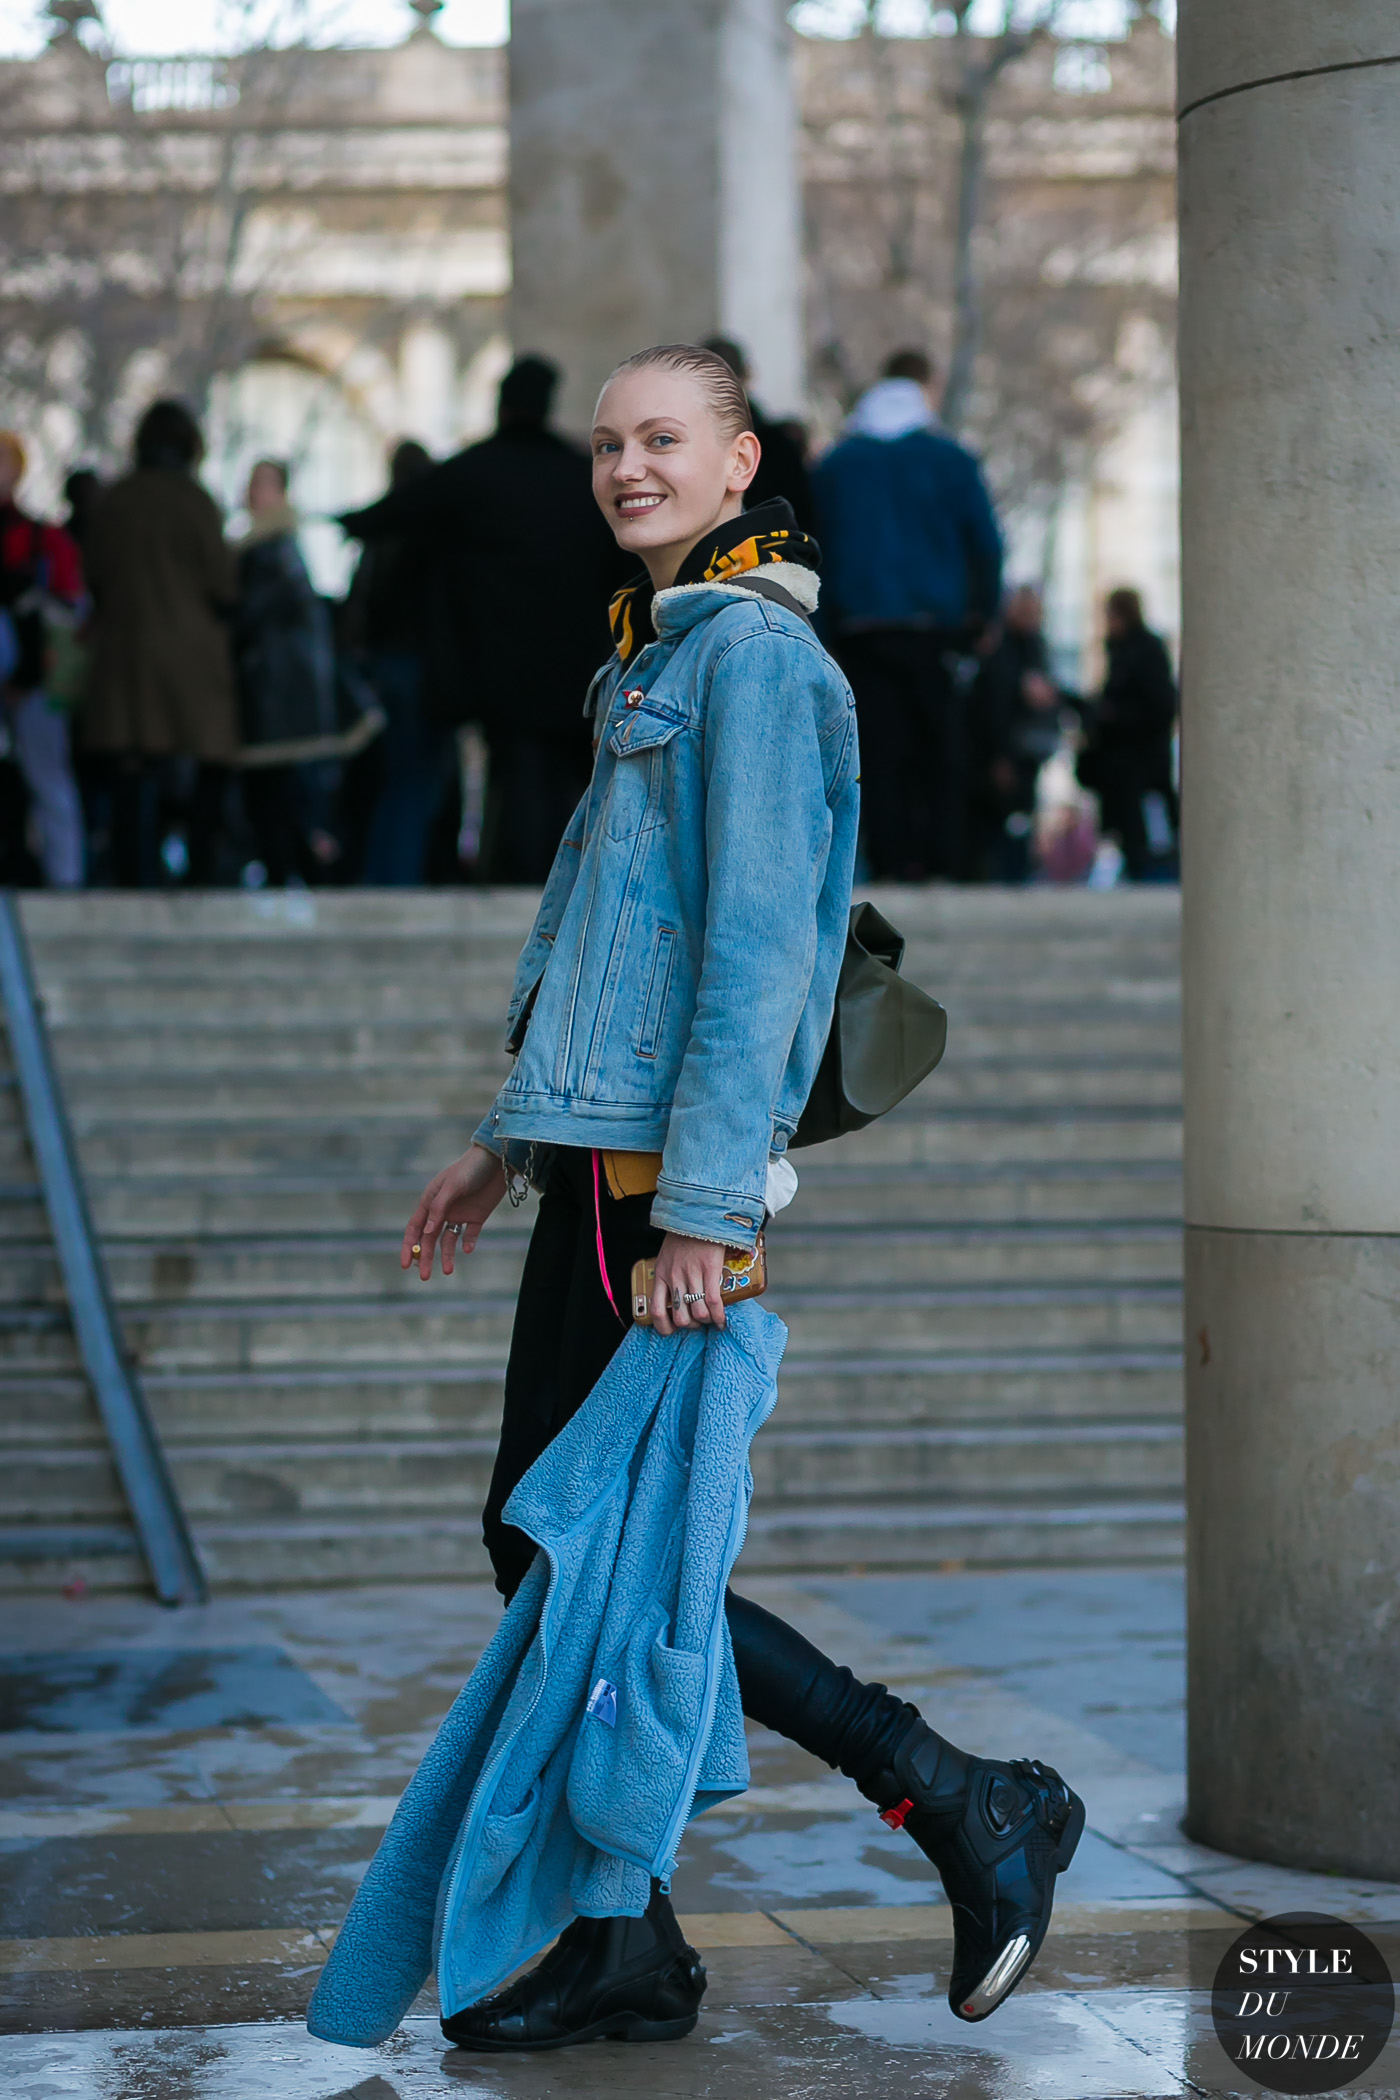 Sasha Melnychuk by STYLEDUMONDE Street Style Fashion Photography